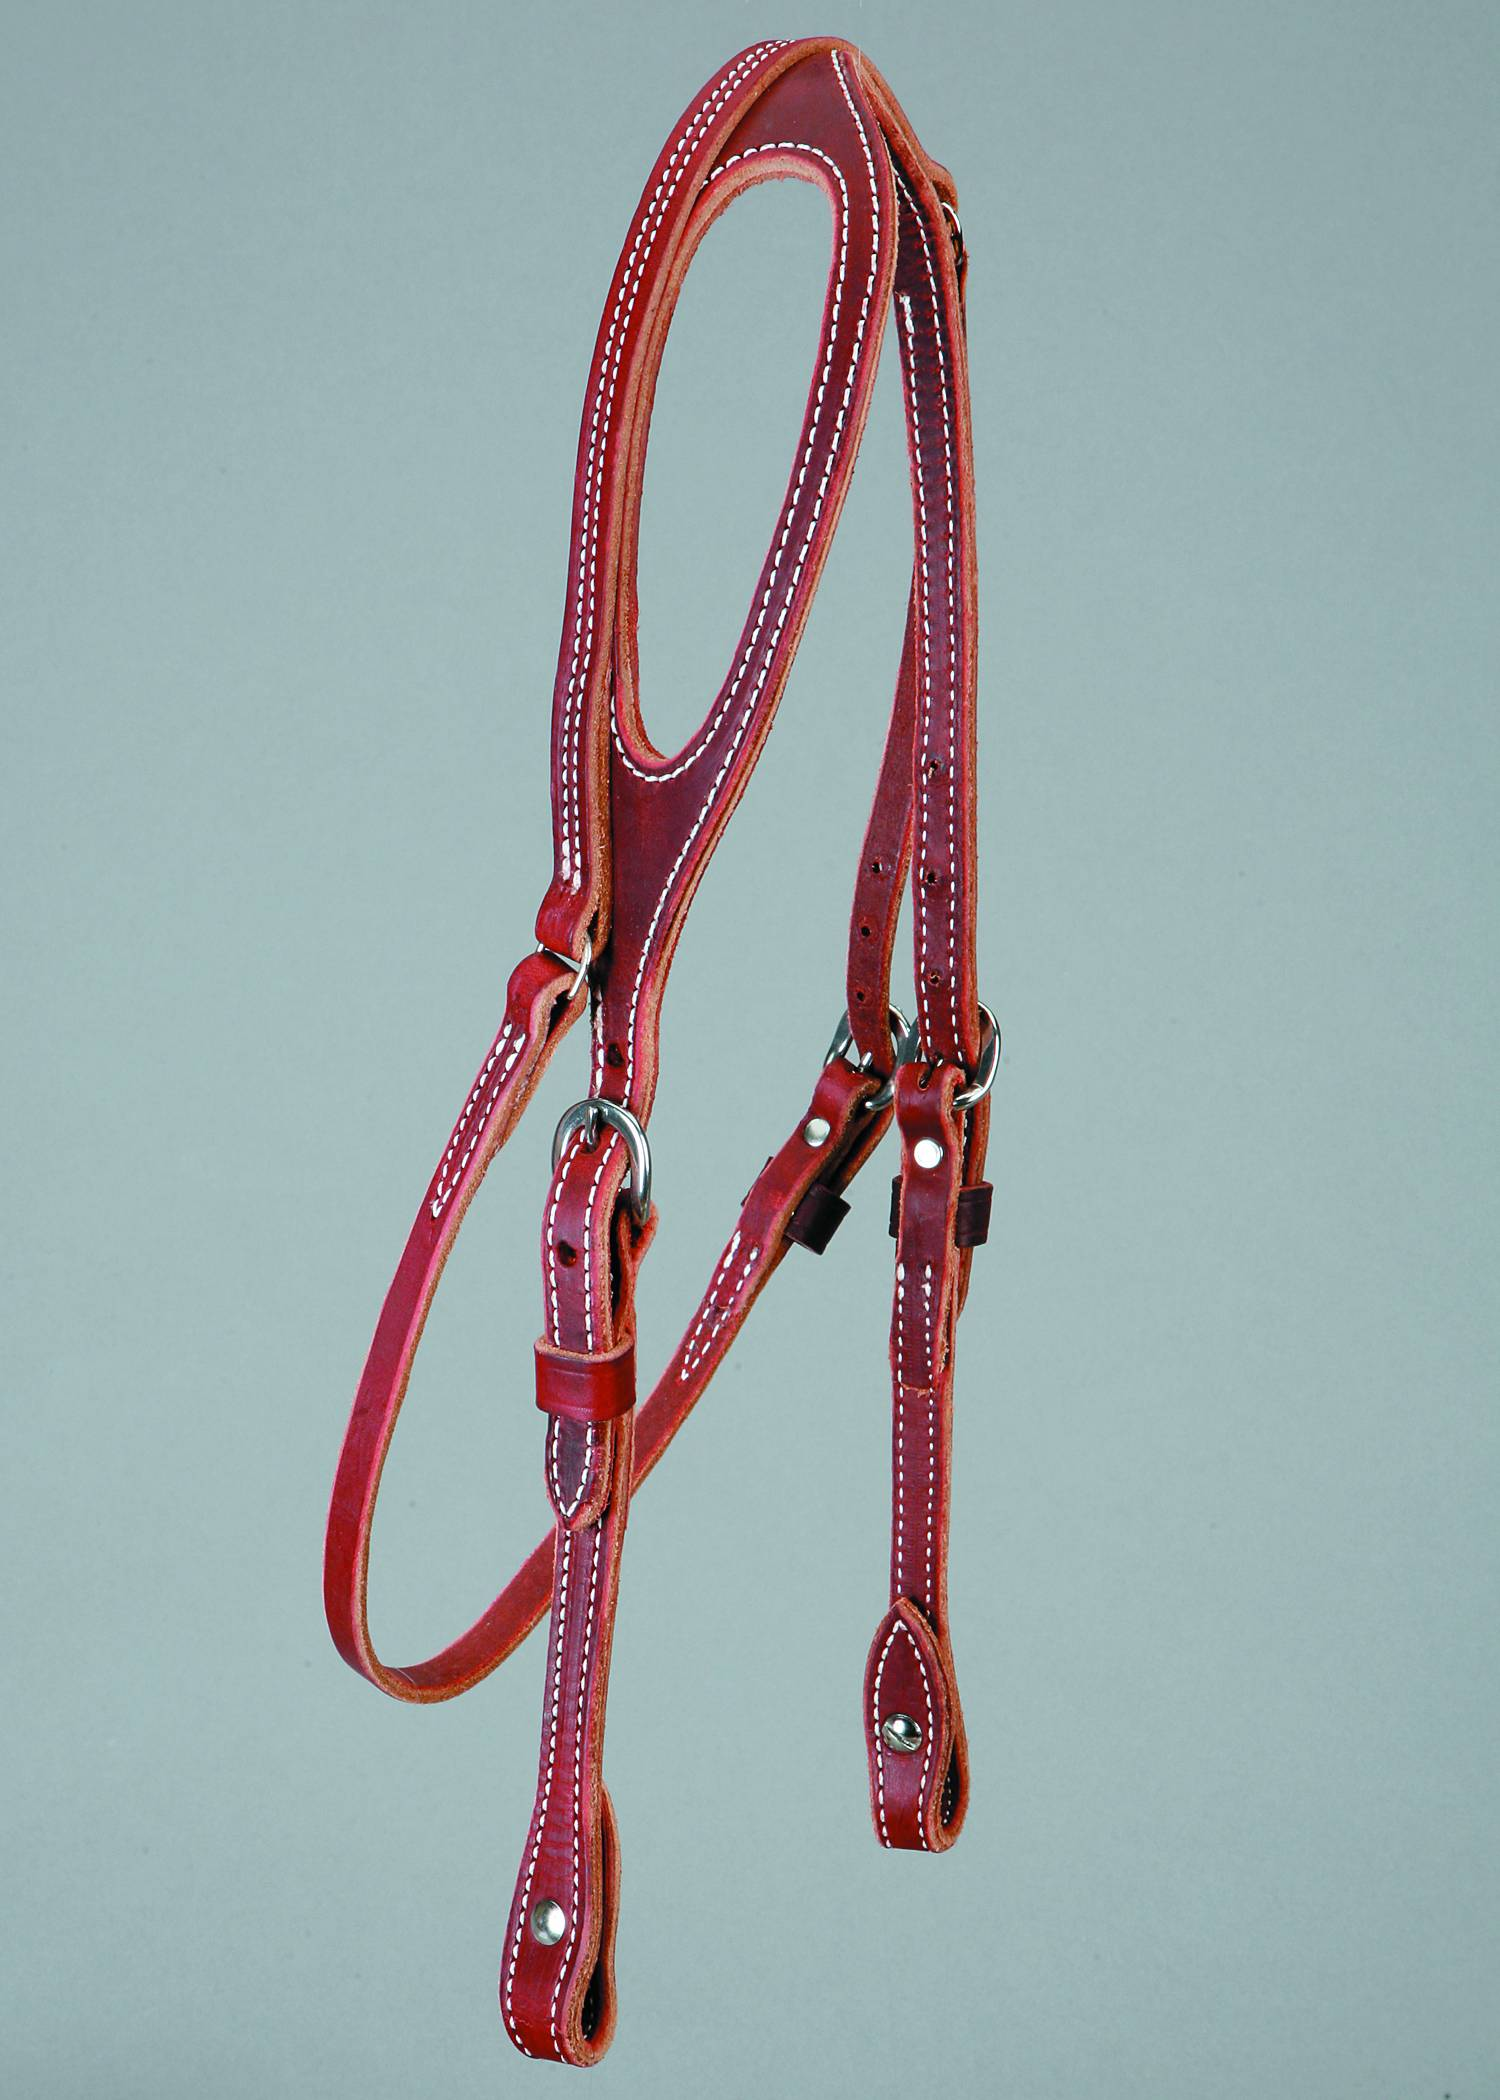 Colorado Saddlery Latigo One Ear Headstall - Chicago Screws